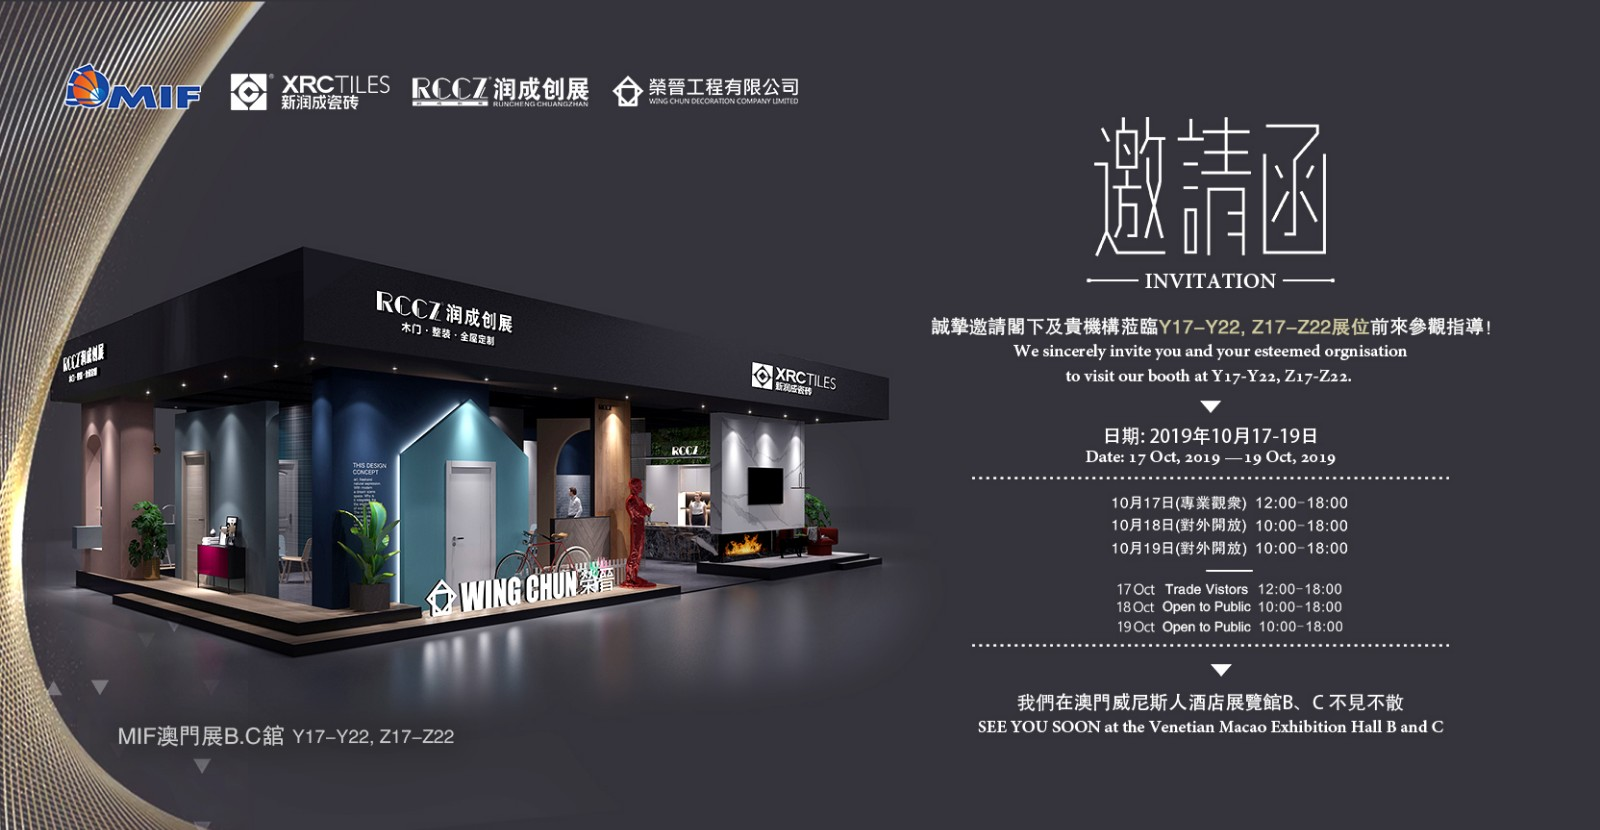 Runcheng Chuangzhan-Countdown MIF is about to open-12